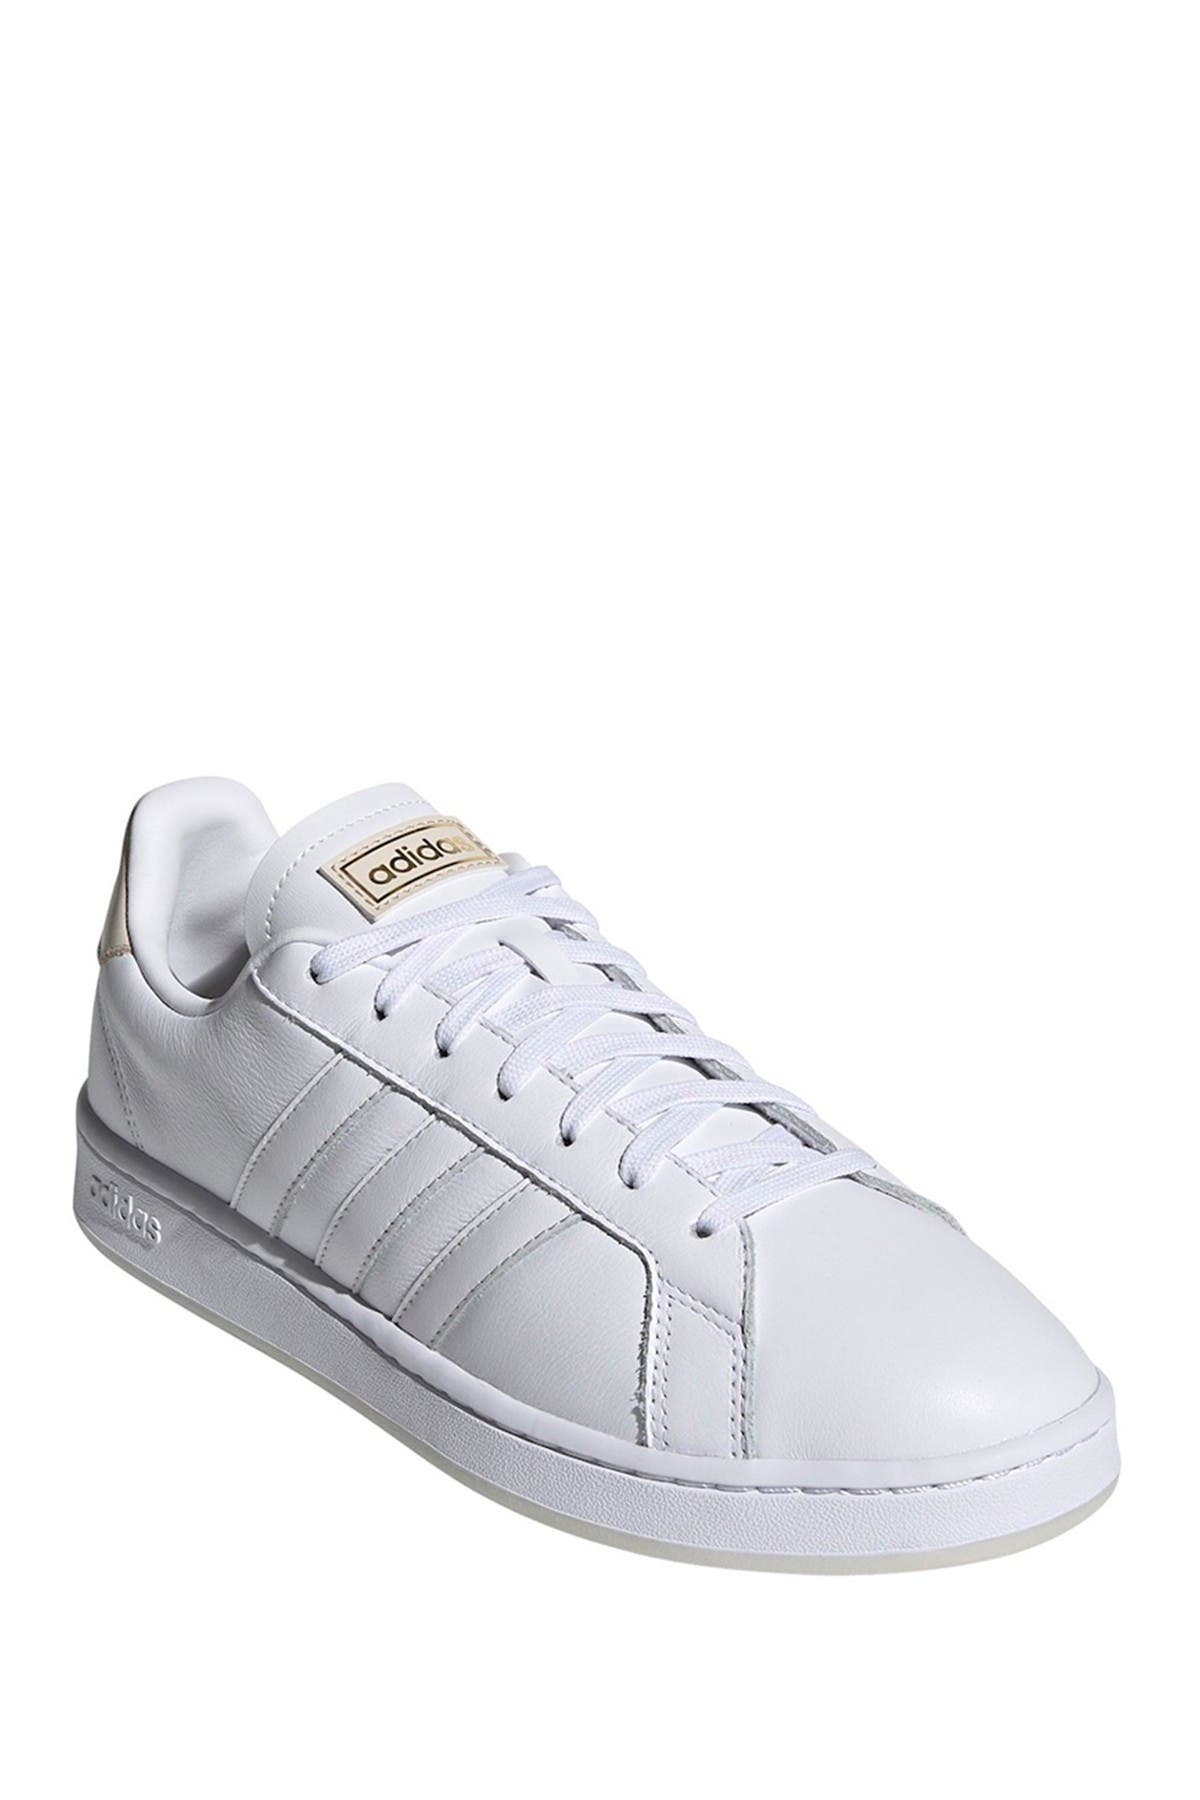 Image of adidas Grand Court Leather Sneaker